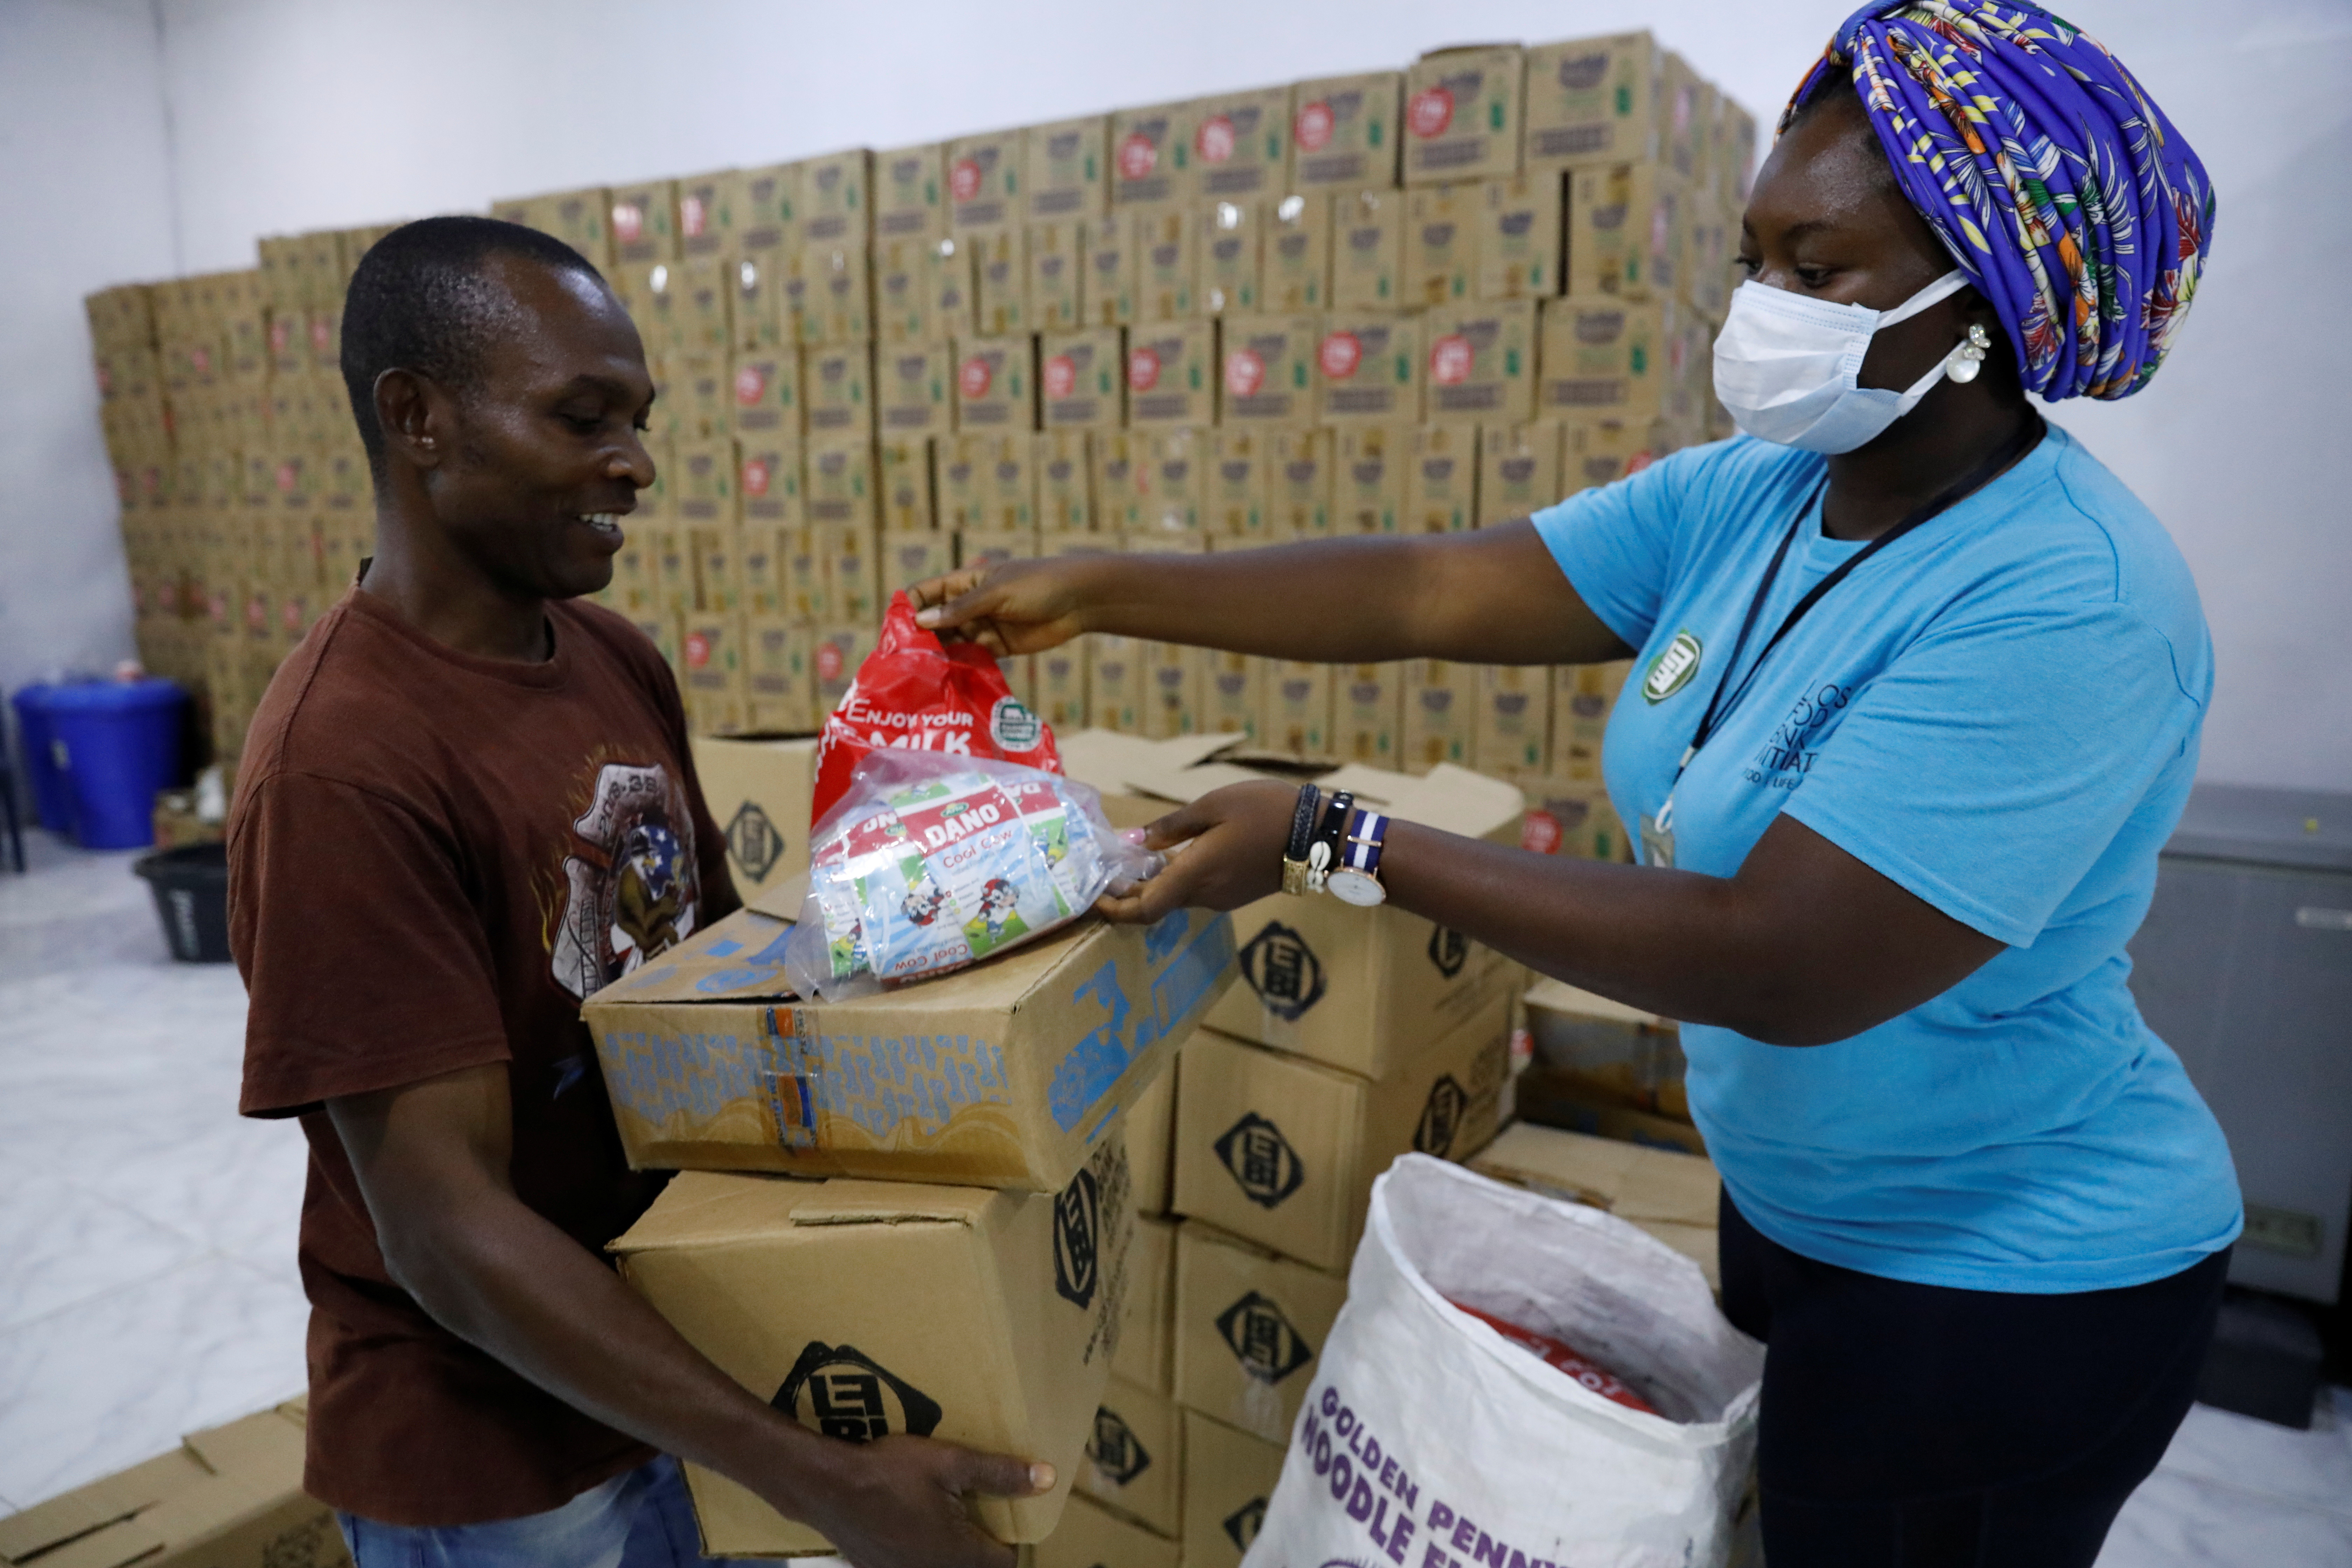 Desmond Okorie, a beneficiary of the food aid distribution by the Lagos food bank inititative, receives food supplies at the food bank warehouse in Lagos, Nigeria July 10, 2021